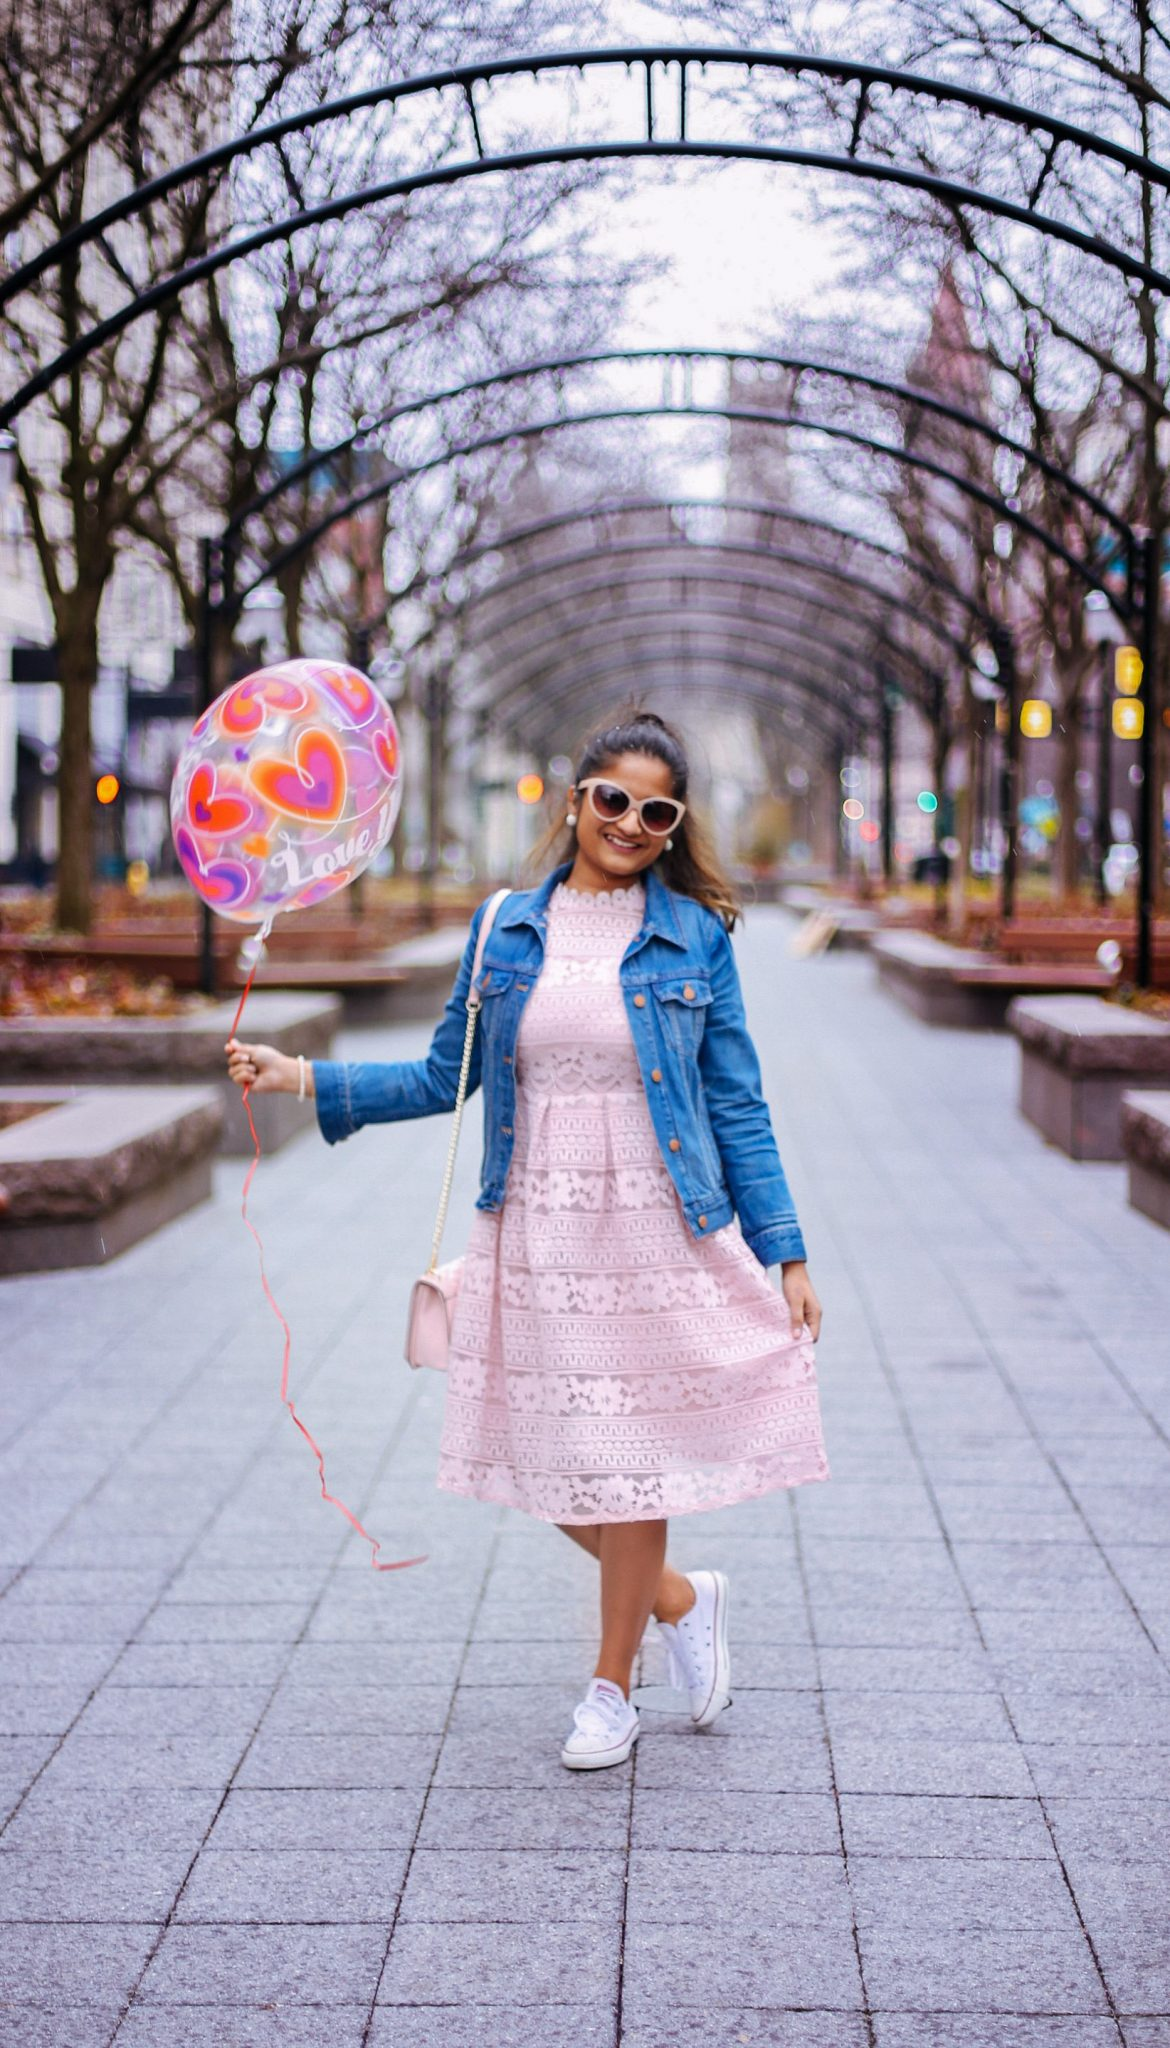 lifestyle blog dreaming loud sharing how to be your own Valentine and the celebrate the wonderful you 2018